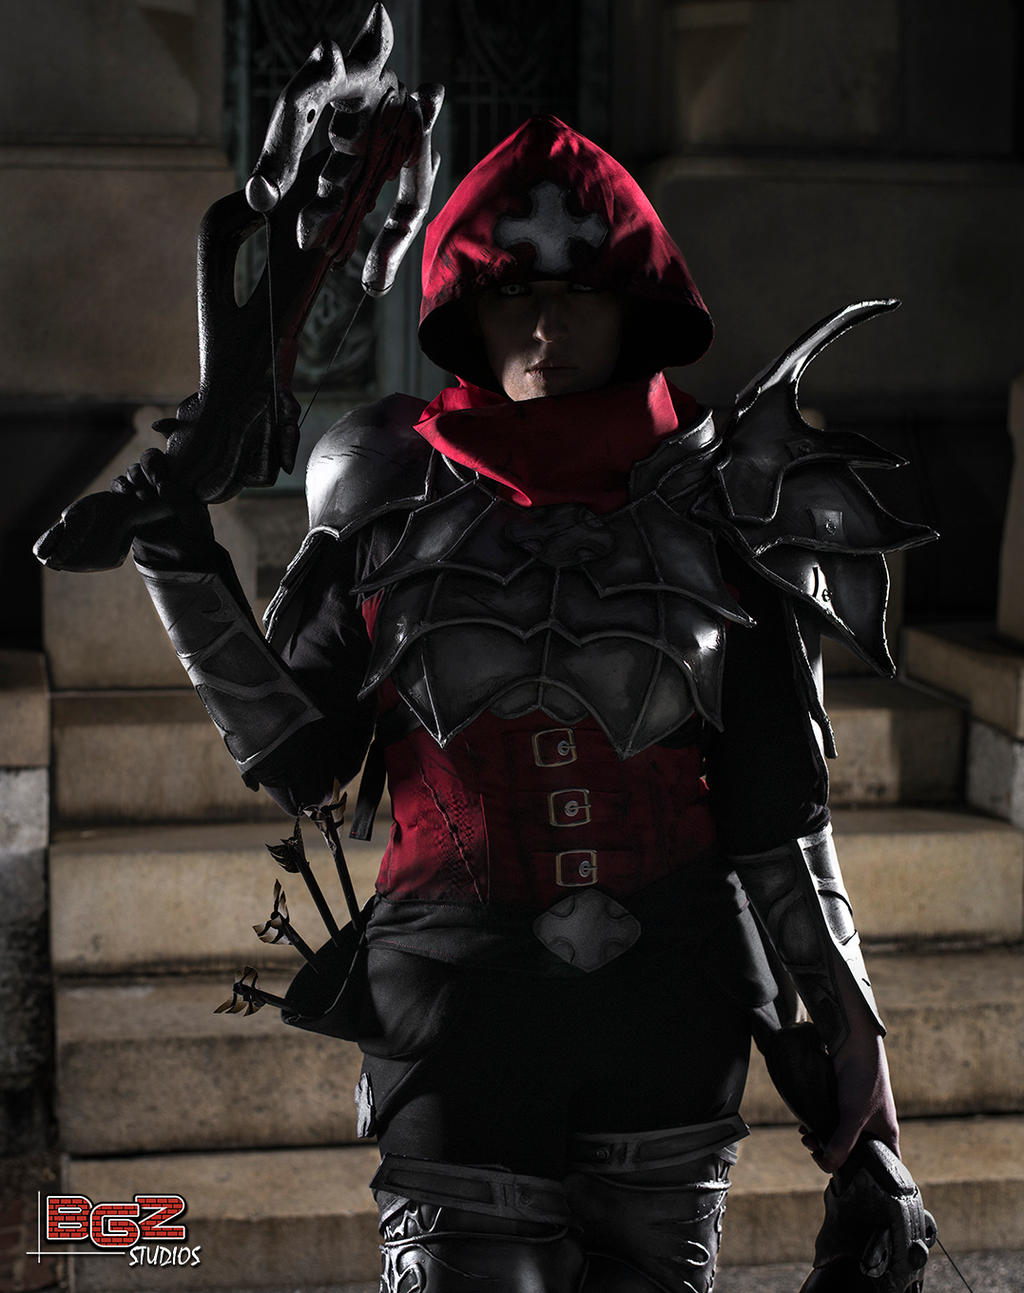 Demon Hunter Cosplay - Prowling the Cemetery 2 by bgzstudios